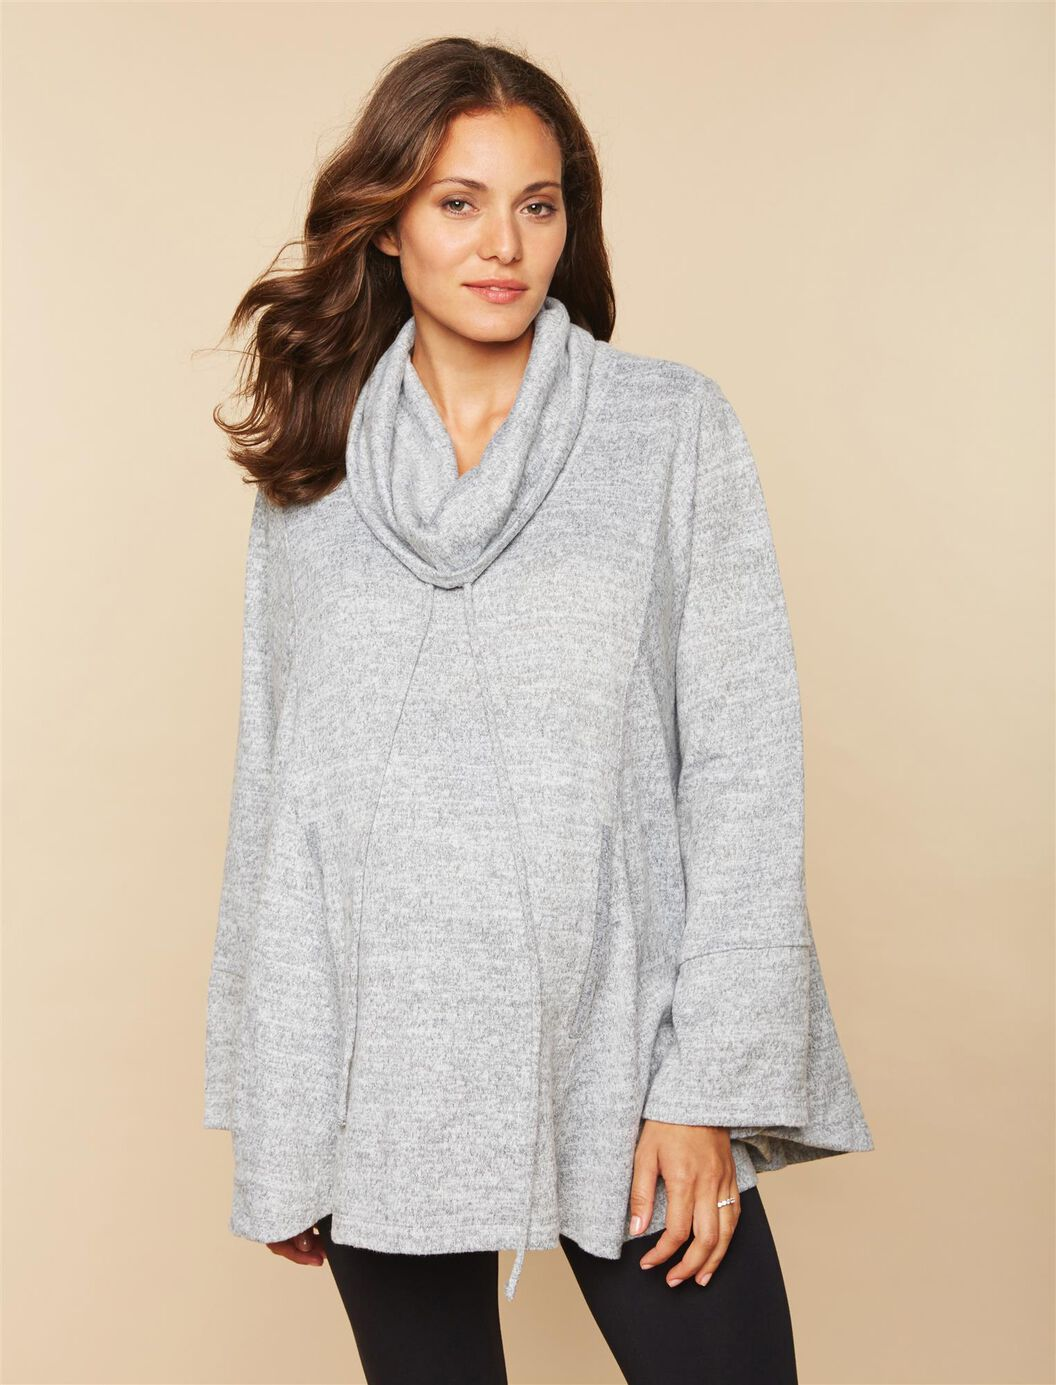 Poncho Maternity Top at Motherhood Maternity in Victor, NY   Tuggl